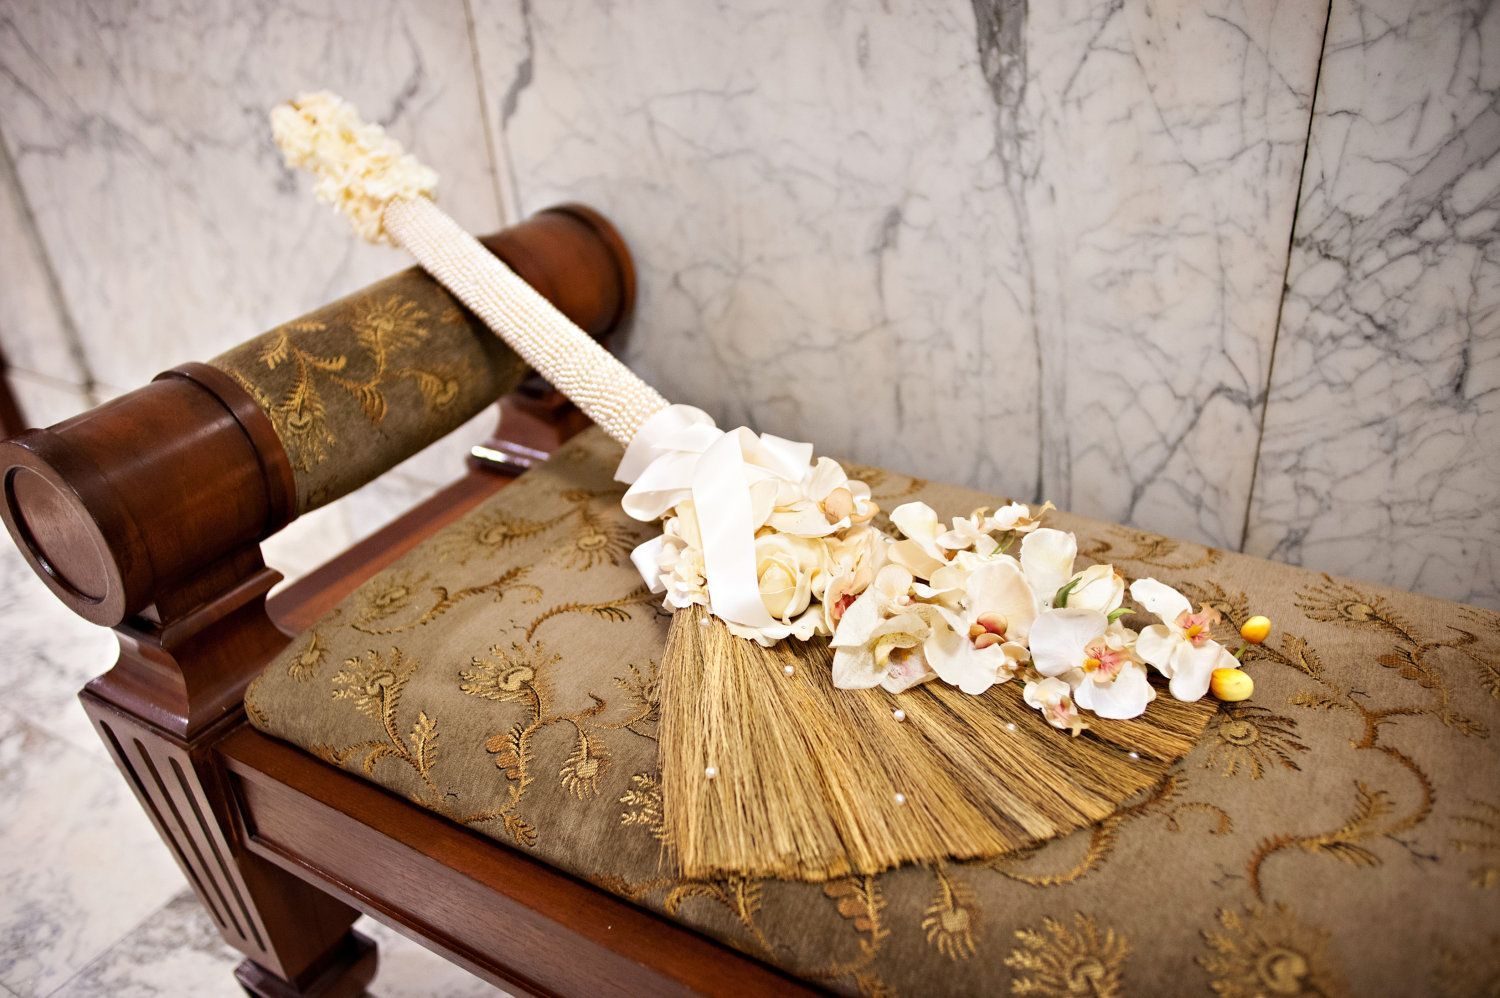 wedding jump broom brooms shovels basic craft wedding broom